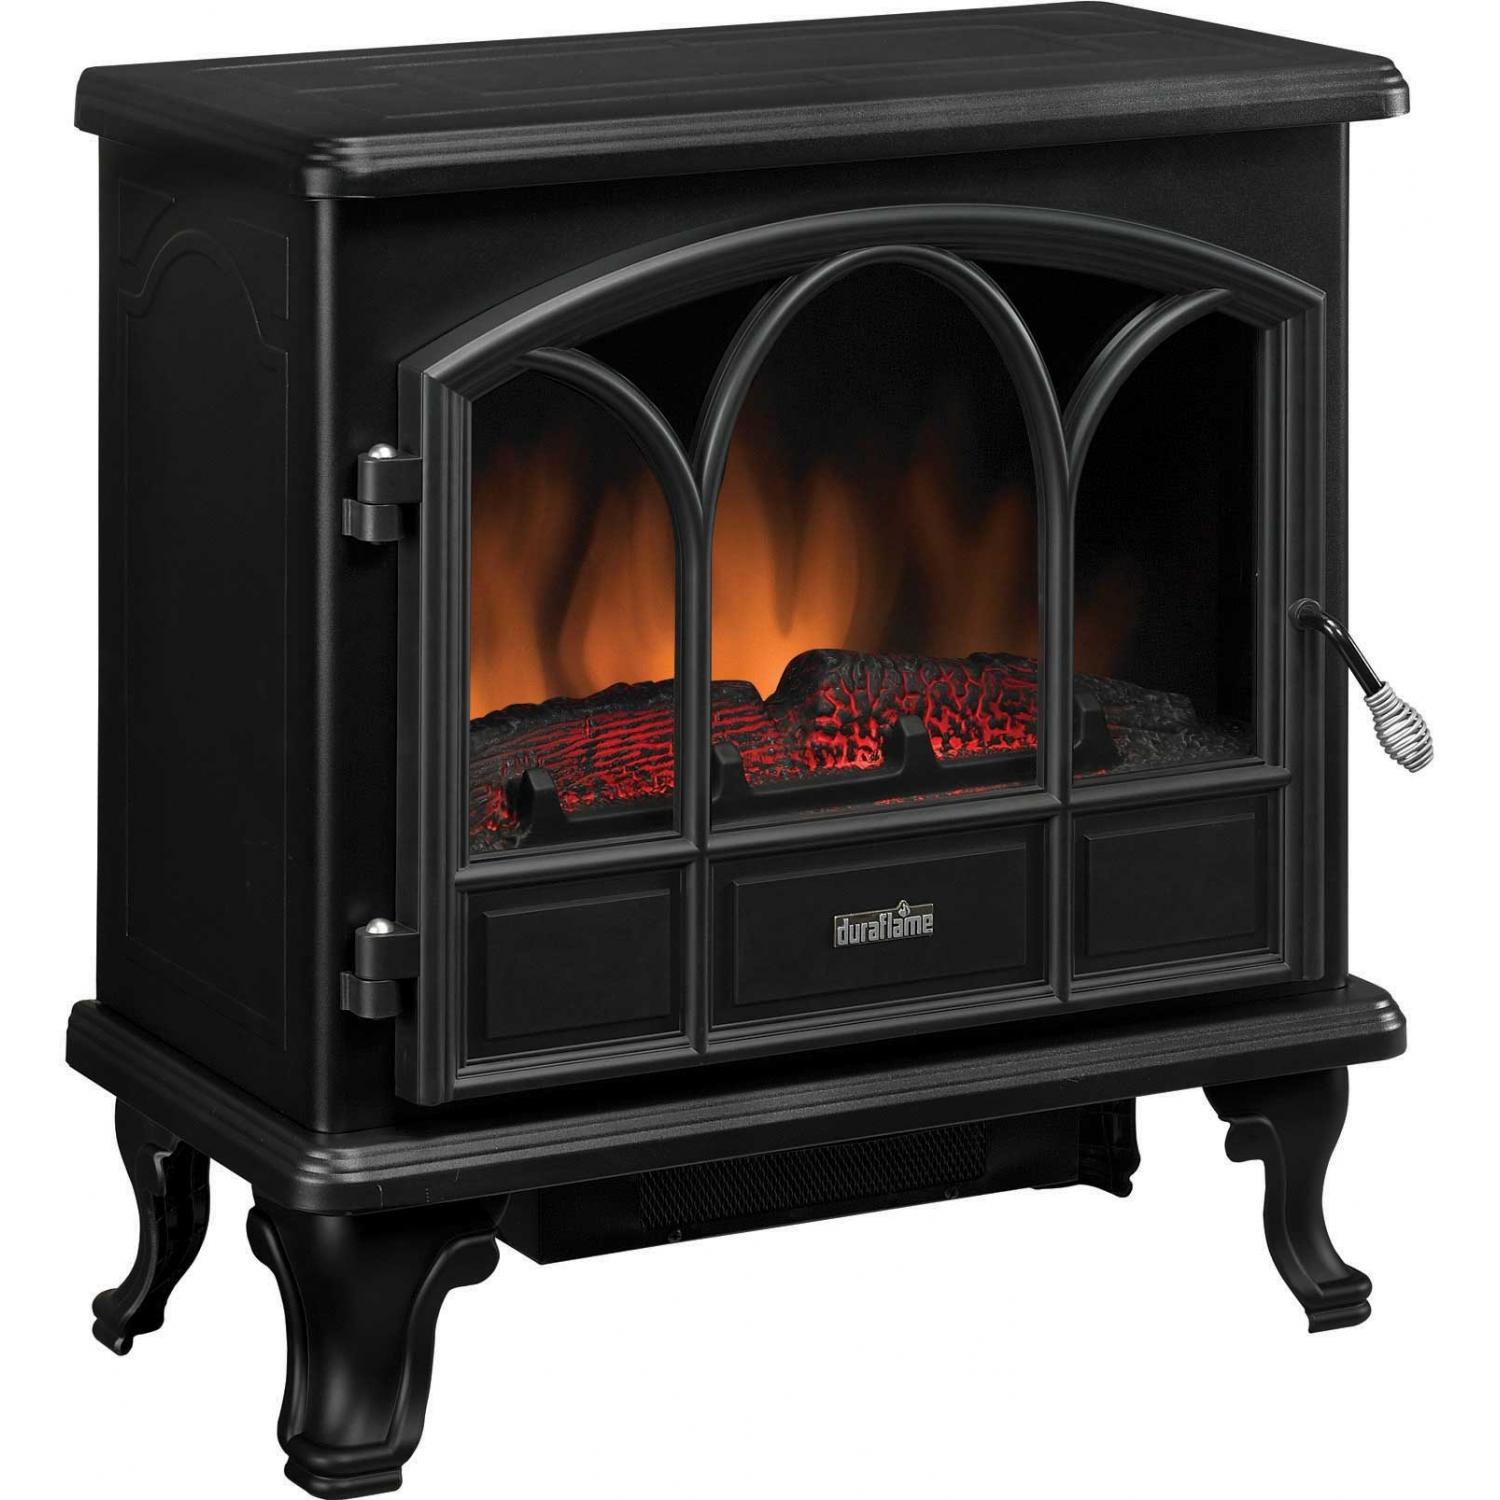 Duraflame DFS-750-1 Large Electric Stove With Heater - Black